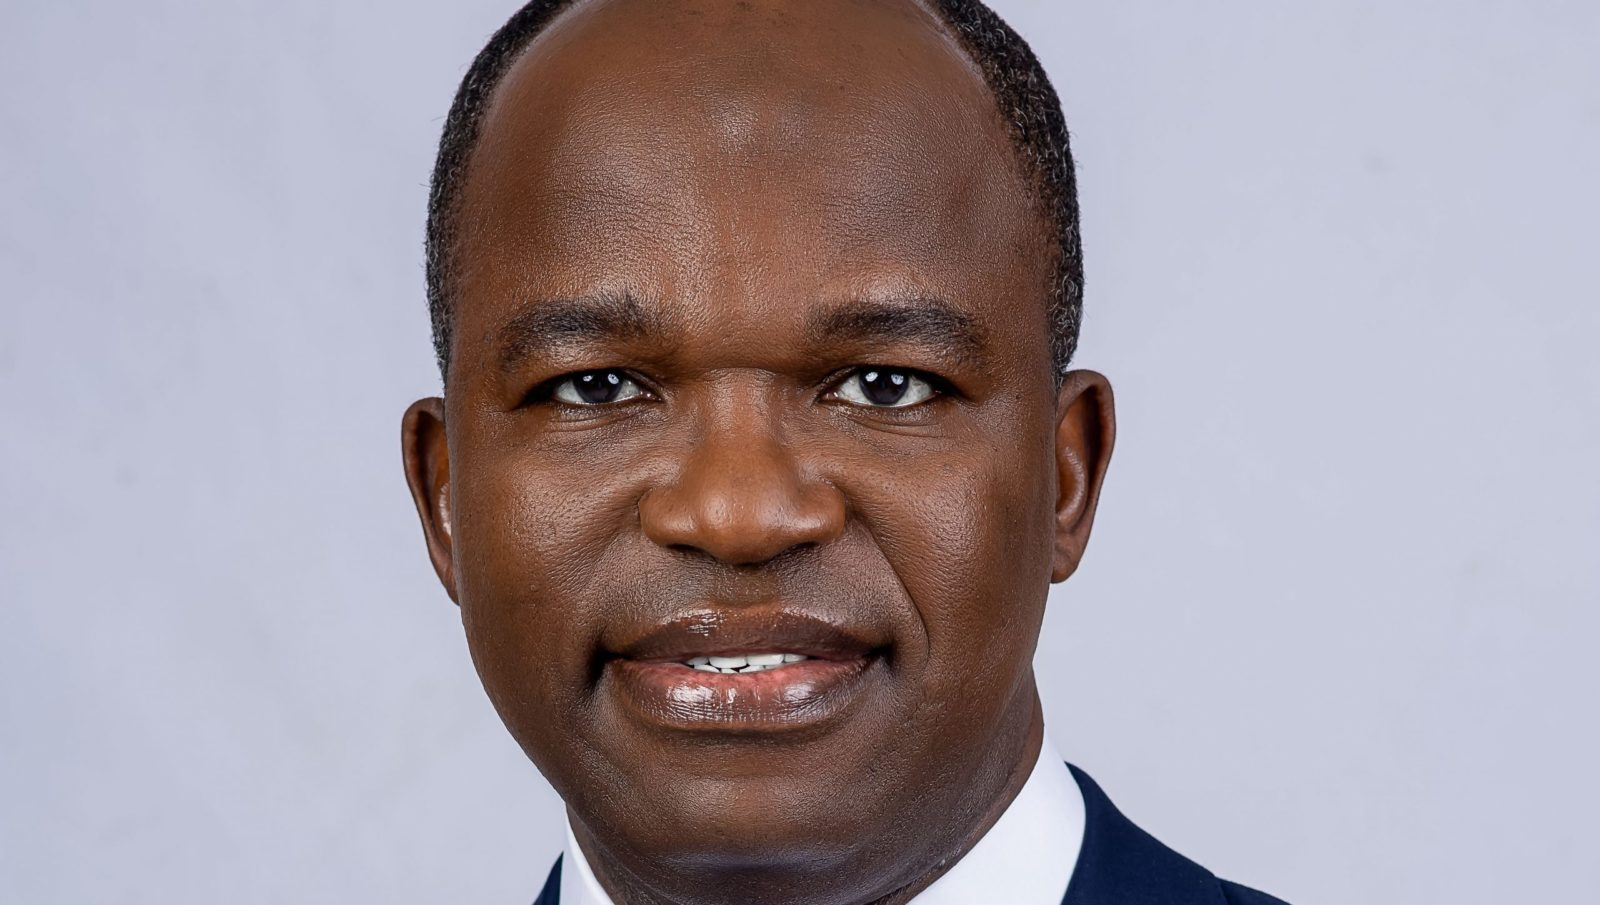 The former Managing Director/Chief Executive Officer of Polaris Bank Limited, Tokunbo Abiru